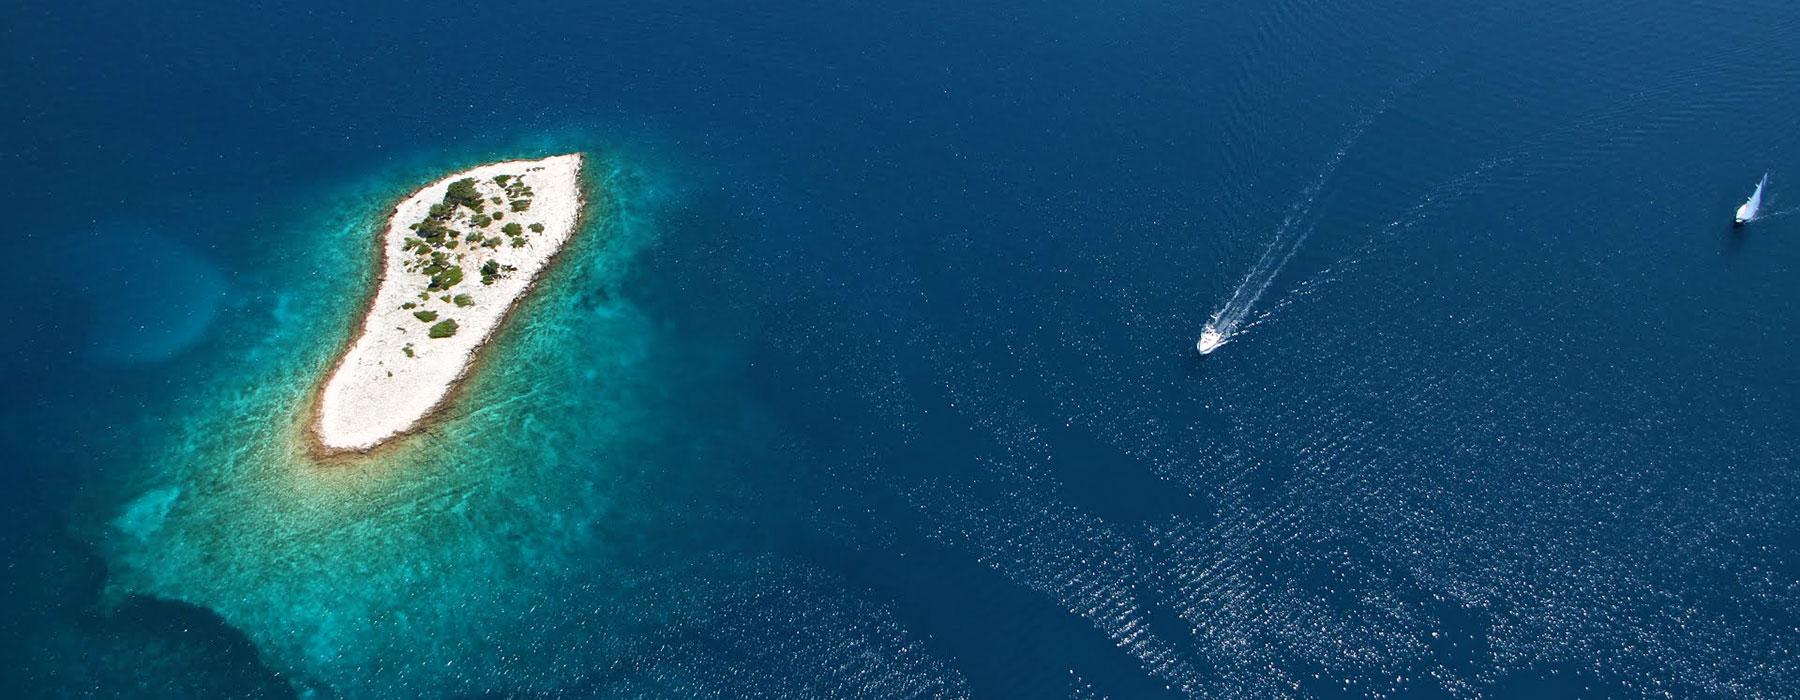 Archipelago Tours Photo ofone small island in Kornati from the air with two boats passing by